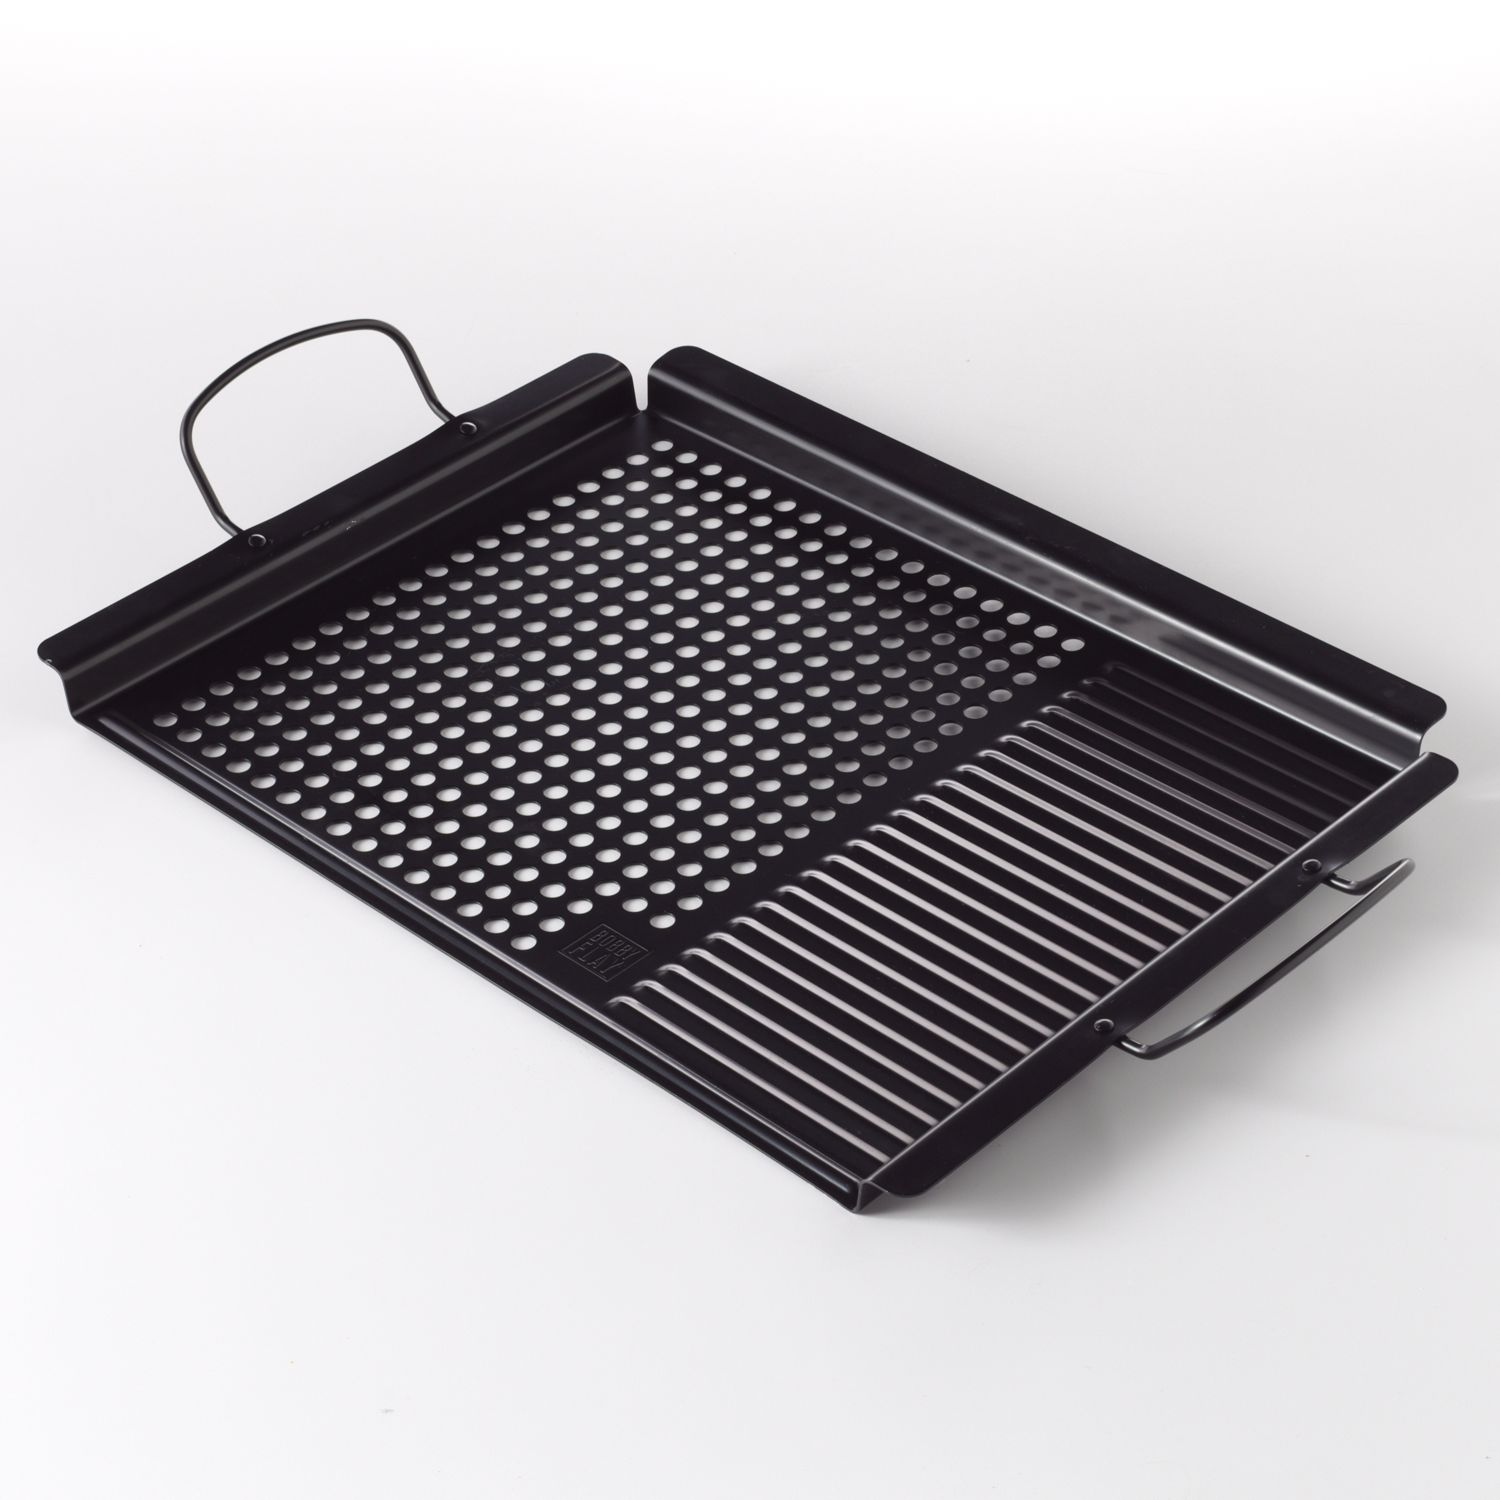 ... Barbecuing Pro. Its Versatile Design Lets You Cook Meats, Vegetables  And More, All At Once. Create Gourmet Grilled Dishes With The Help Of This  Bobby ...